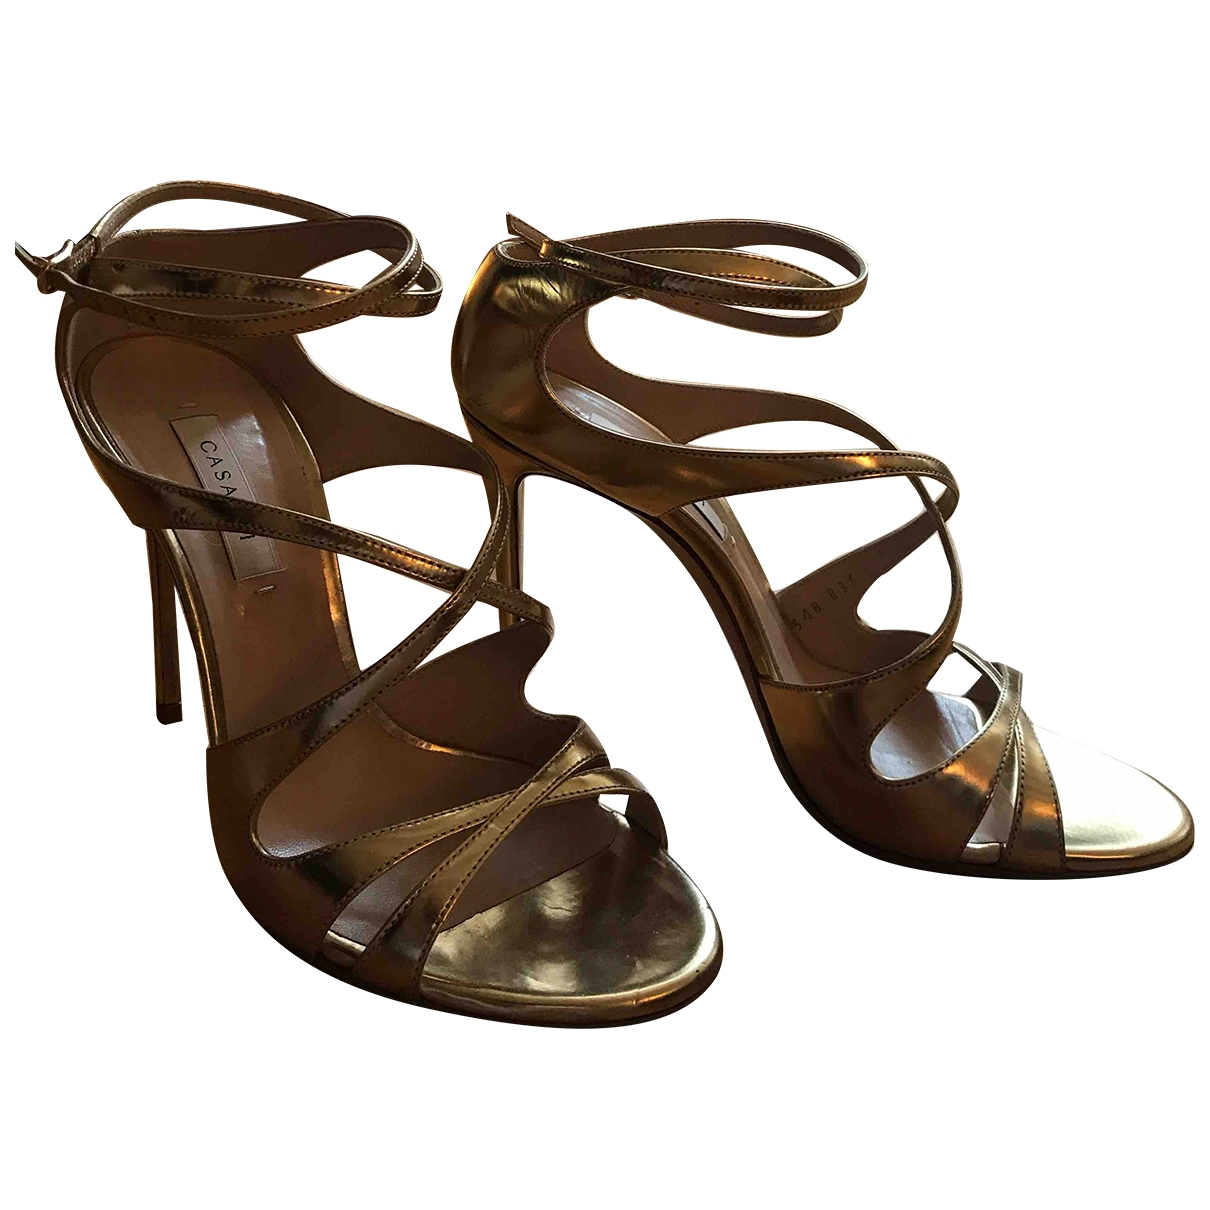 Casadei \N Metallic Leather Sandals for Women 6 US